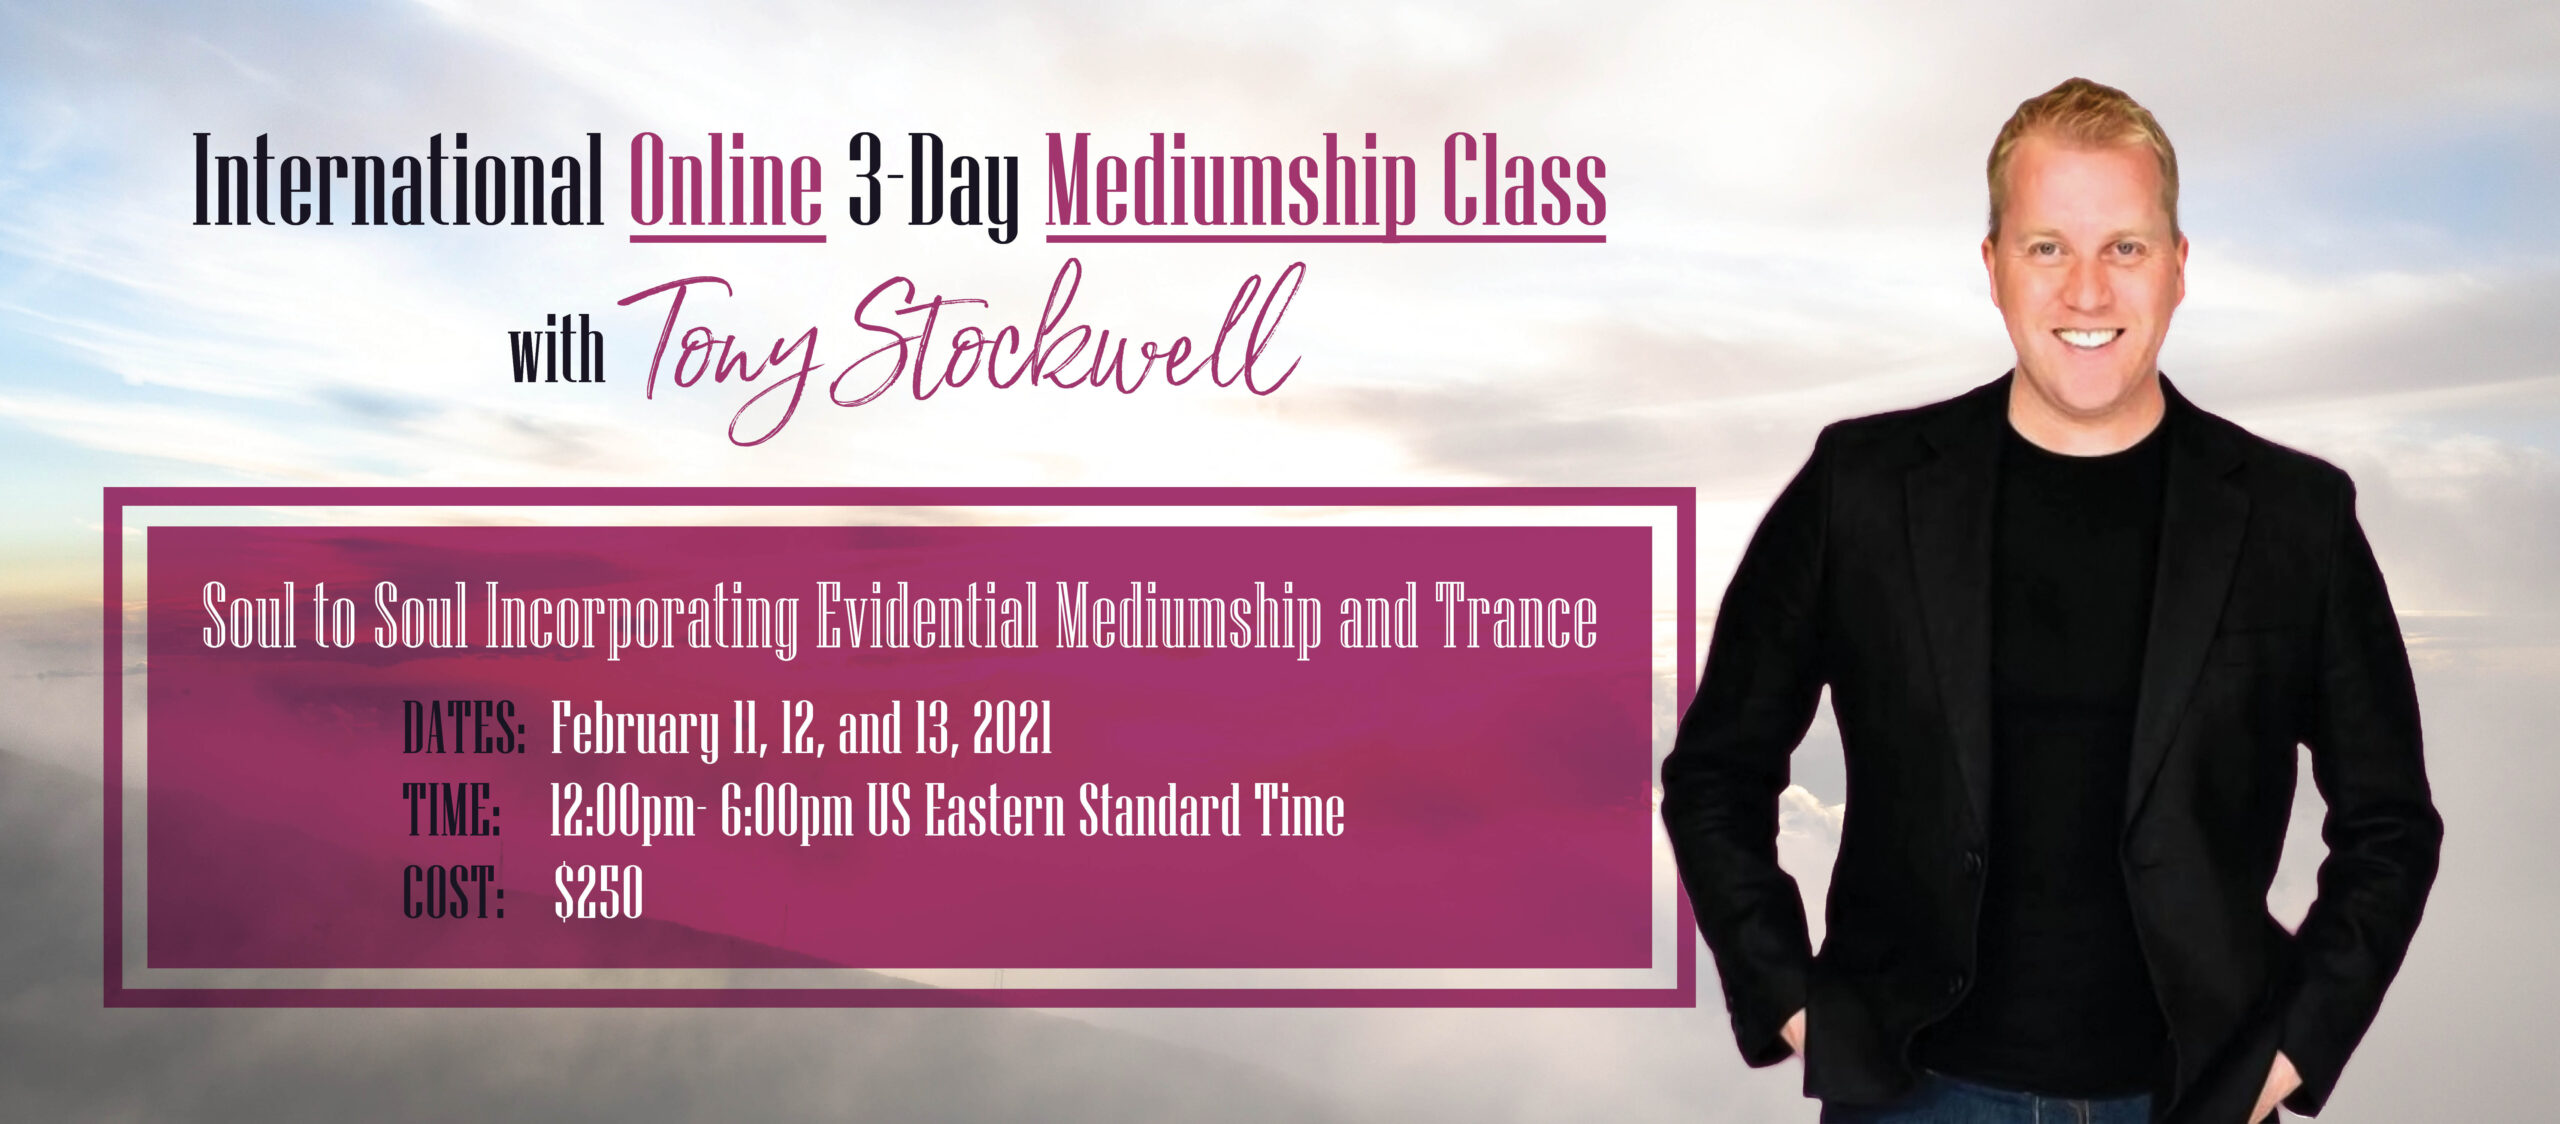 International Online 3-Day Mediumship Class with Tony Stockwell - Soul to Soul Incorporating Evidential Mediumship and Trance